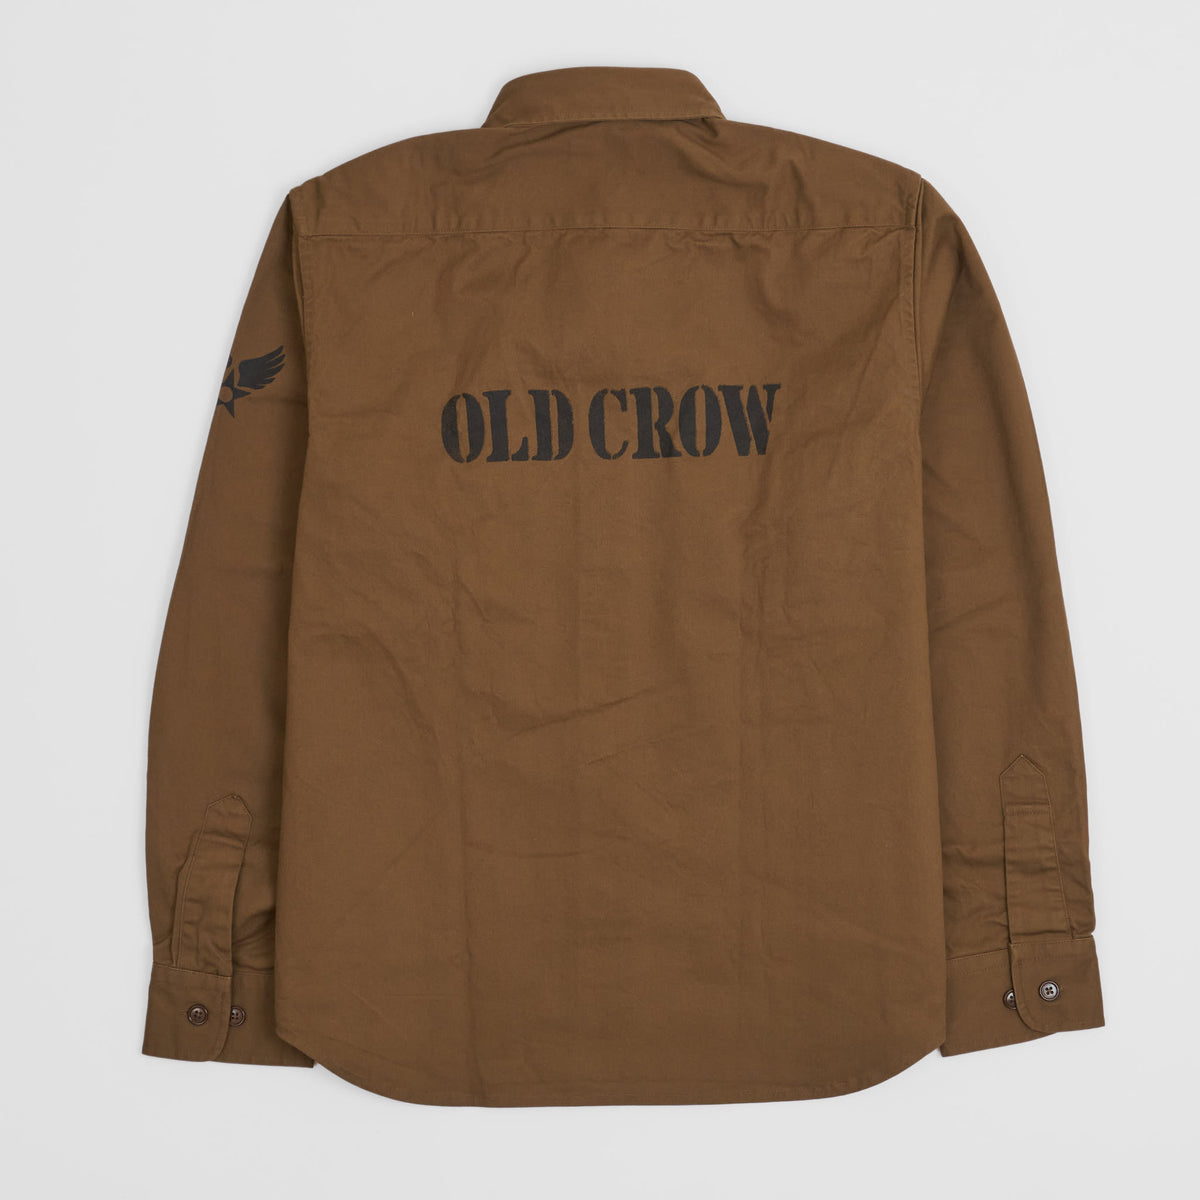 Old Crow Speed Shop by Glad Hand & Co. Officers Long Sleeves Shirt